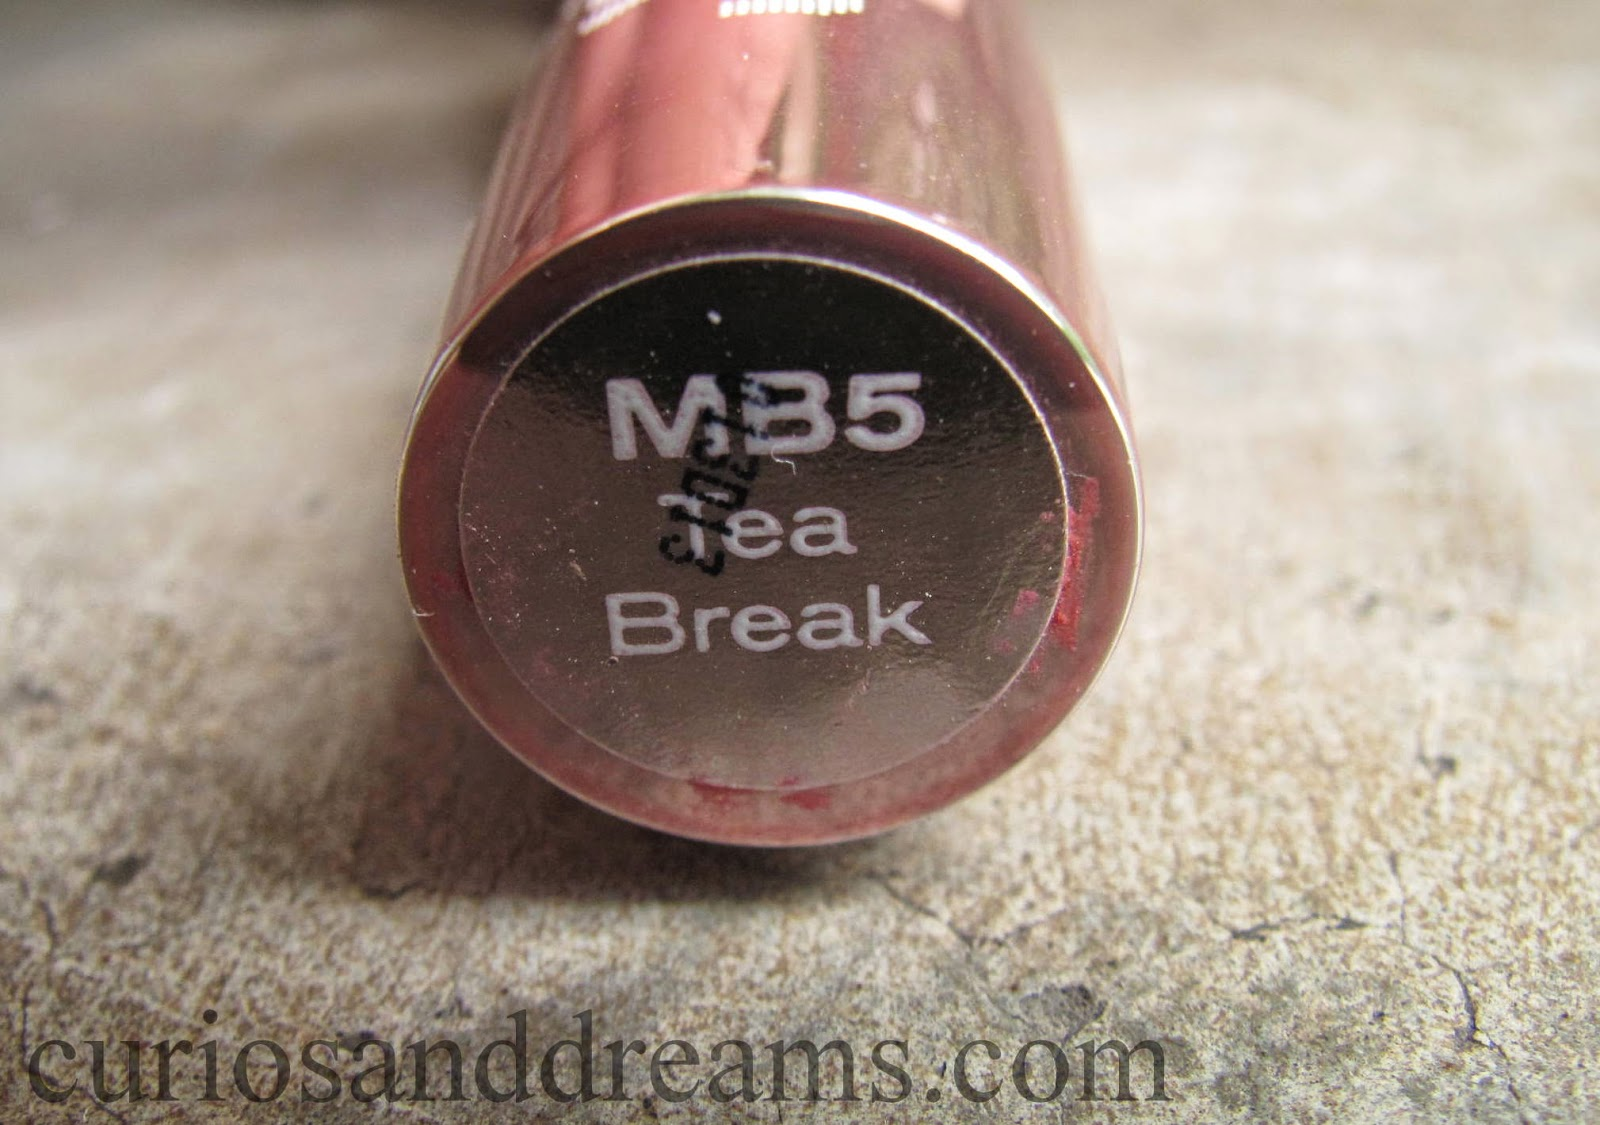 Lakme 9 to 5 Lipstick Tea Break Review, Lakme 9 to 5 Lipstick Tea Break swatch